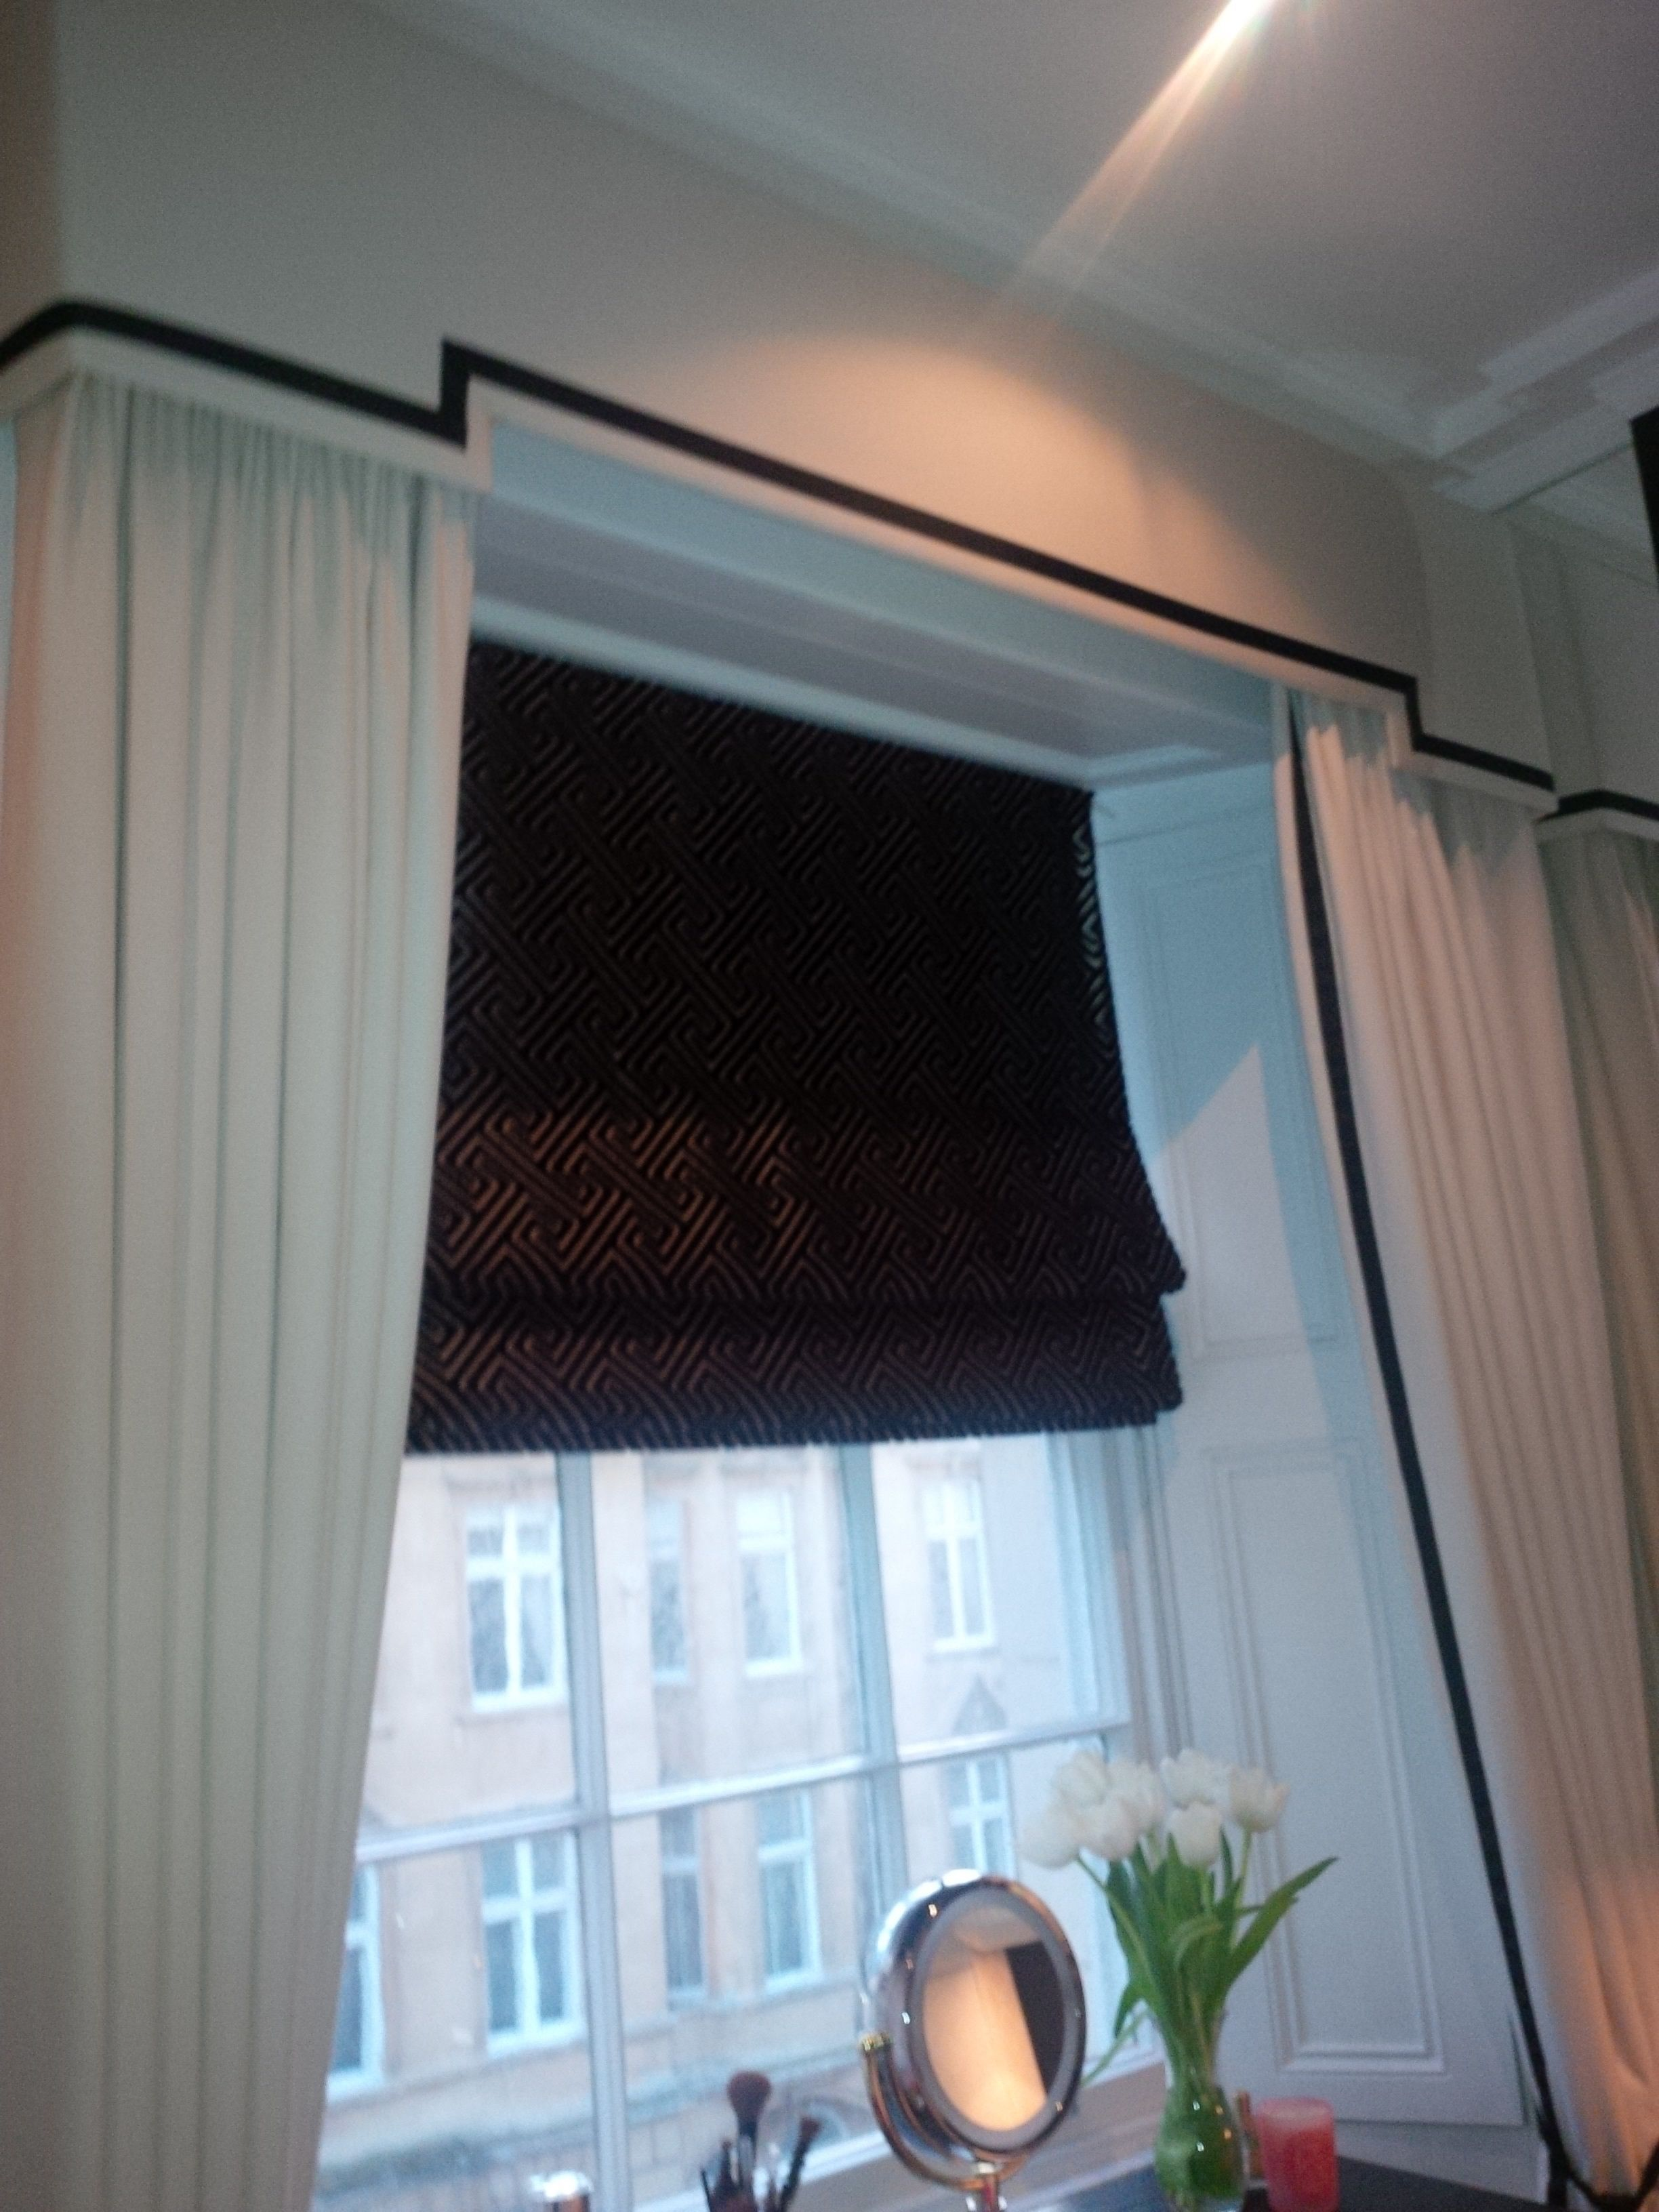 Curtain Pelmet Black And White Window Decor Curtains With Blinds Pelmet Designs